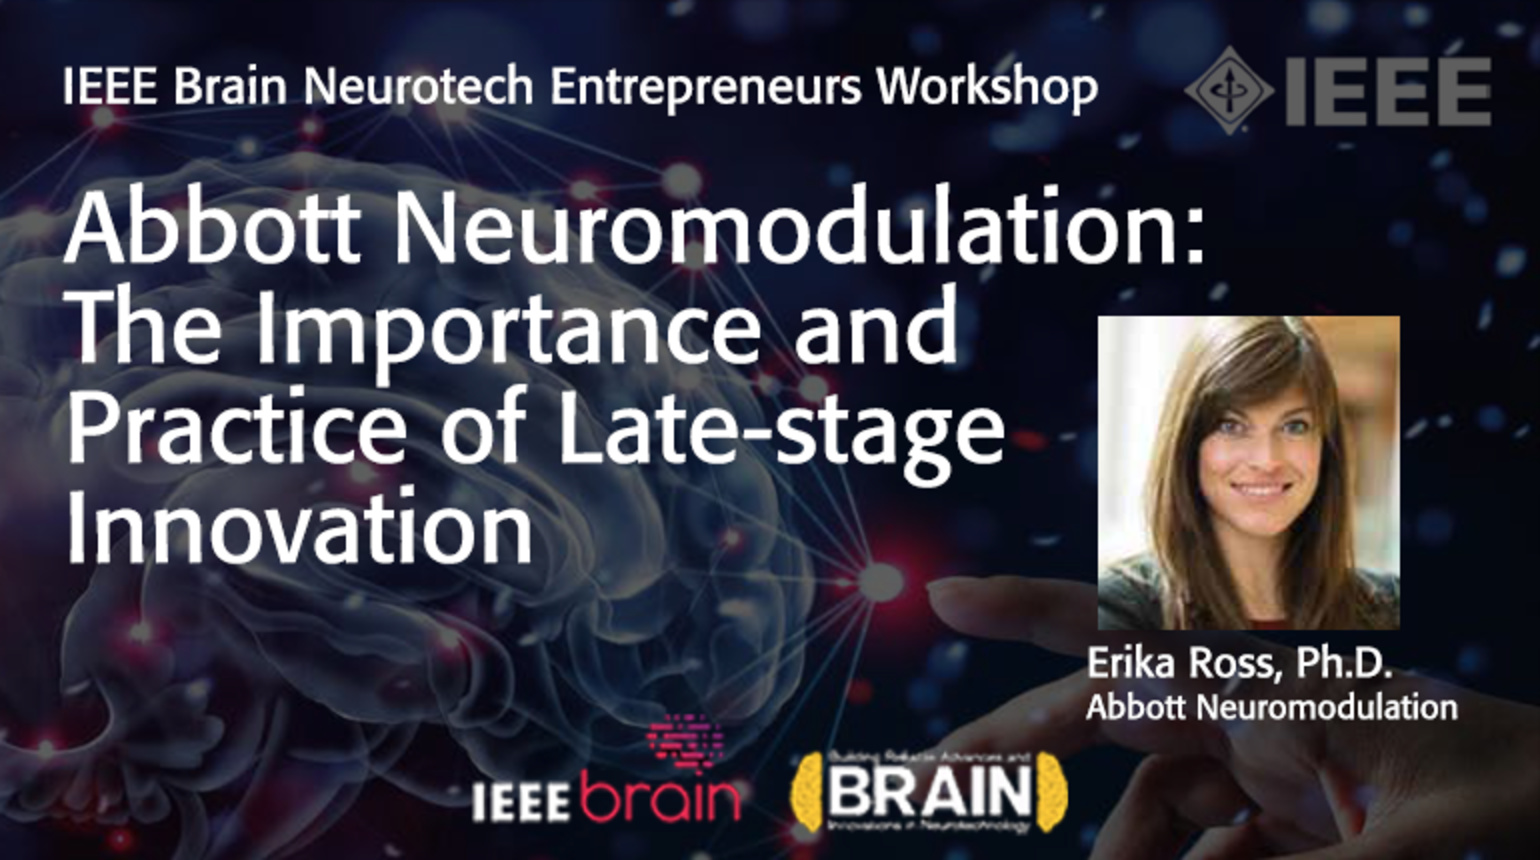 IEEE Brain: Abbott Neuromodulation - The Importance and Practice of Late-stage Innovation